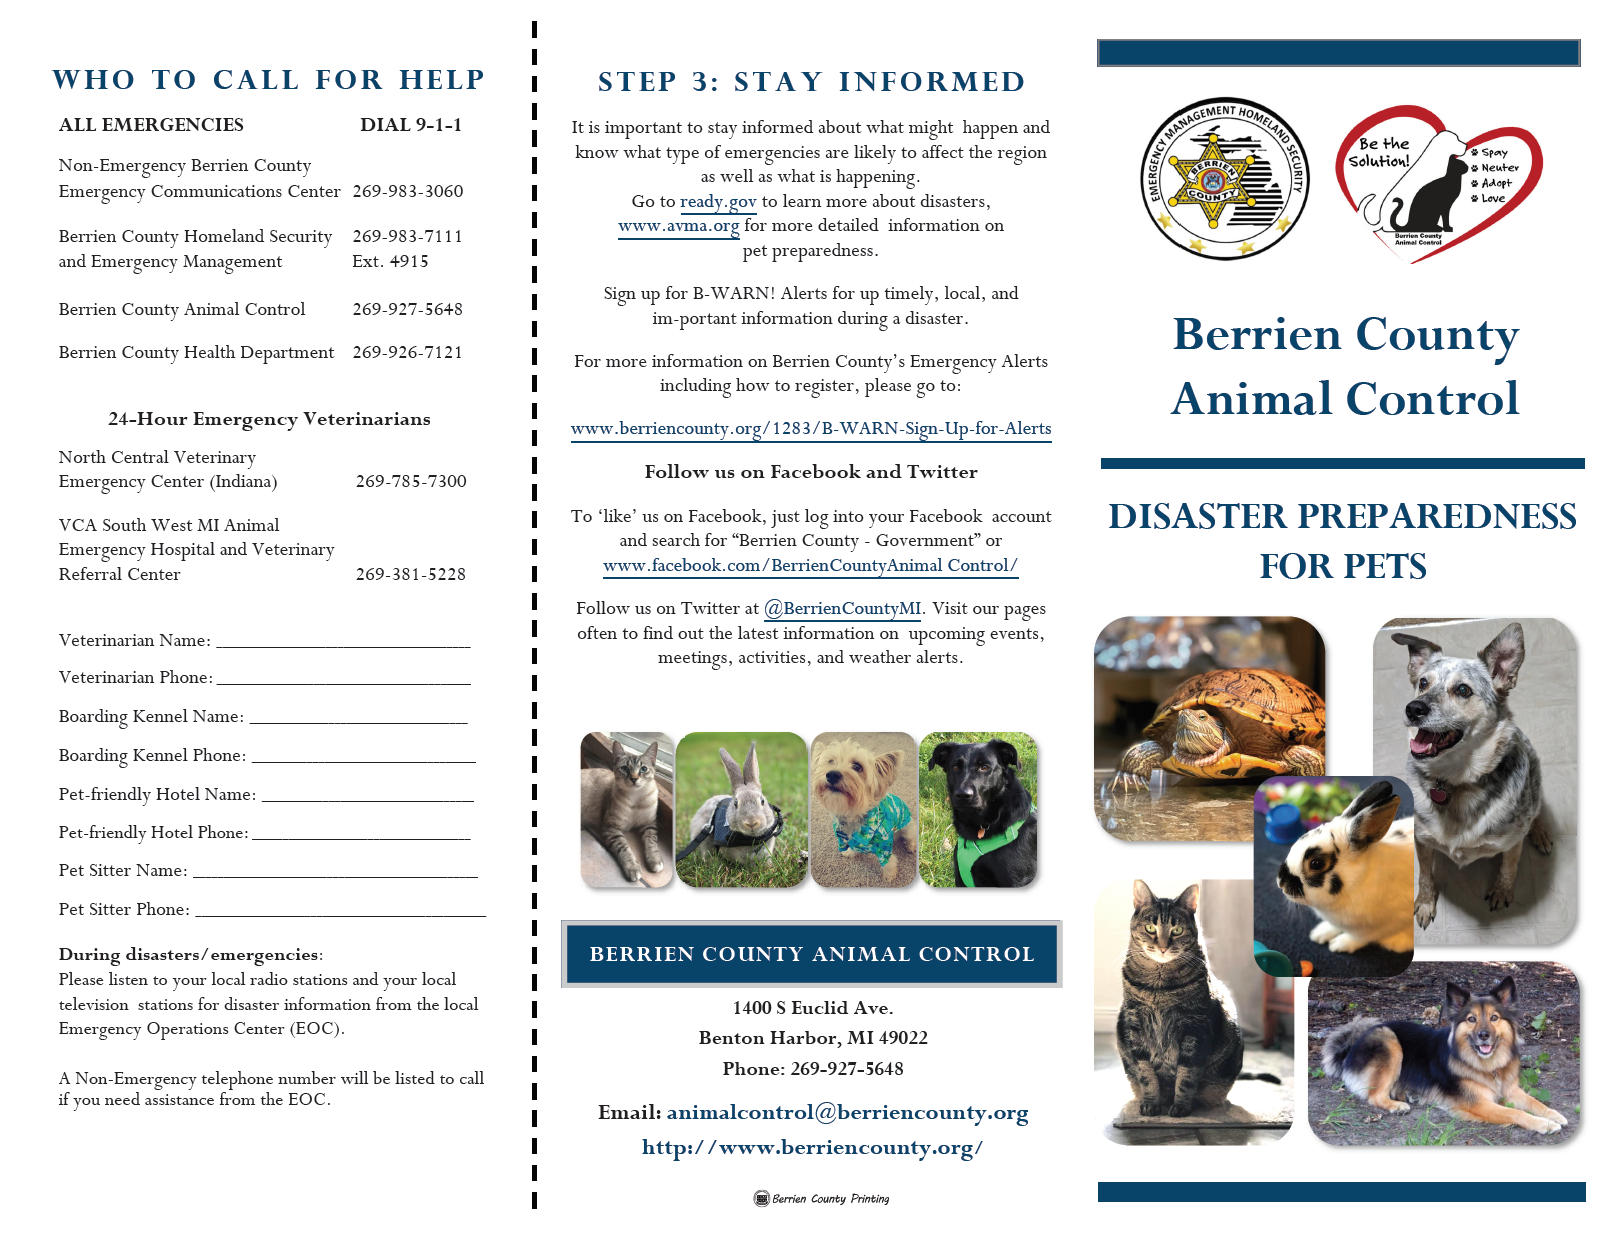 Distaster Preparedness For Pets Flyer Page 1